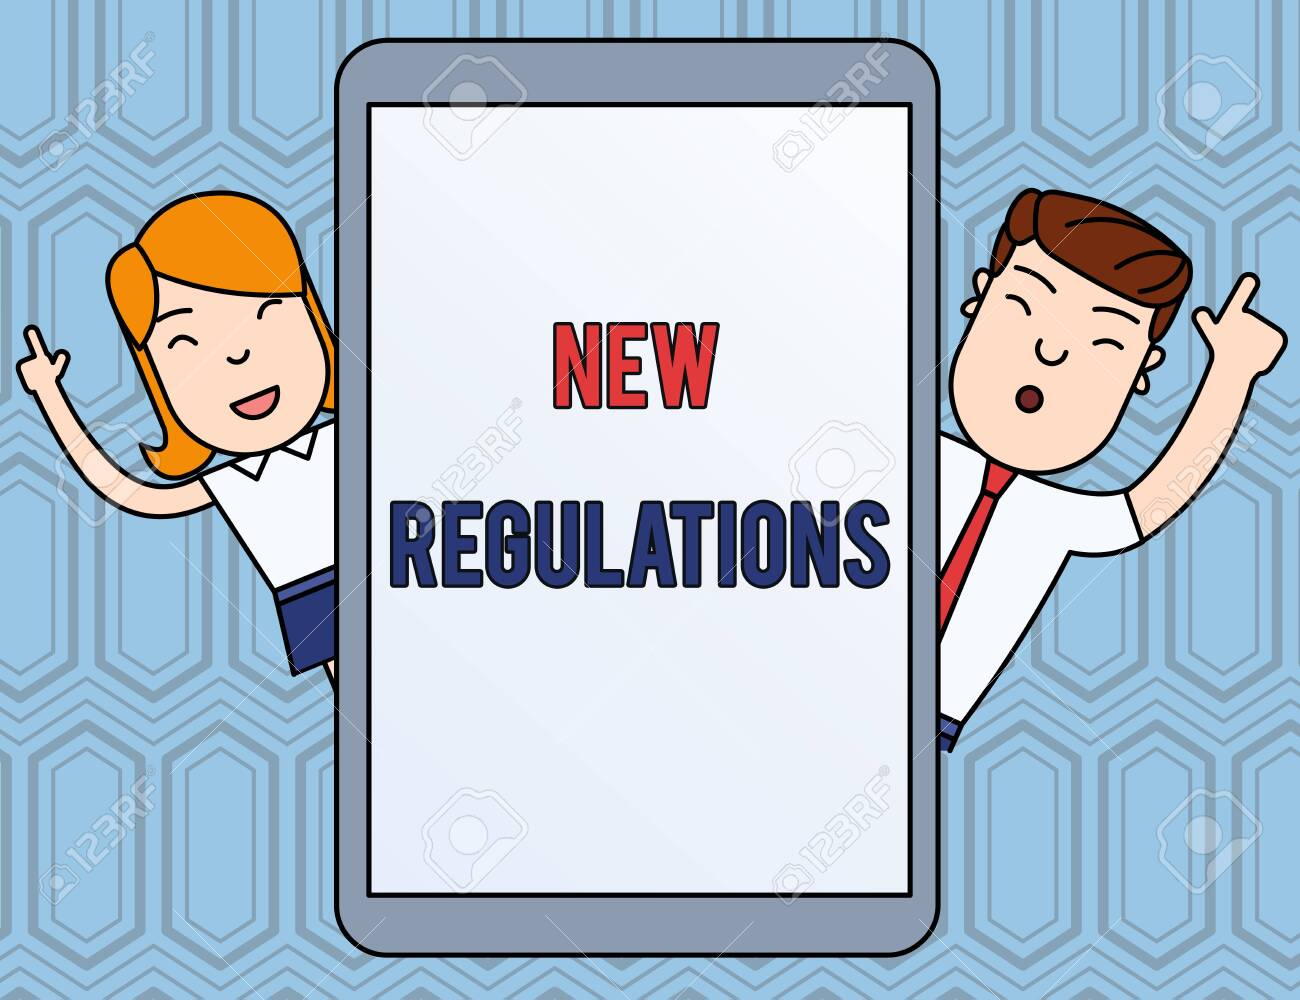 Text sign showing New Regulations. Business photo text Regulation controlling the activity usually used by rules. Male and Female Index Fingers Up Touch Screen Tablet Smartphone Device - 124657016